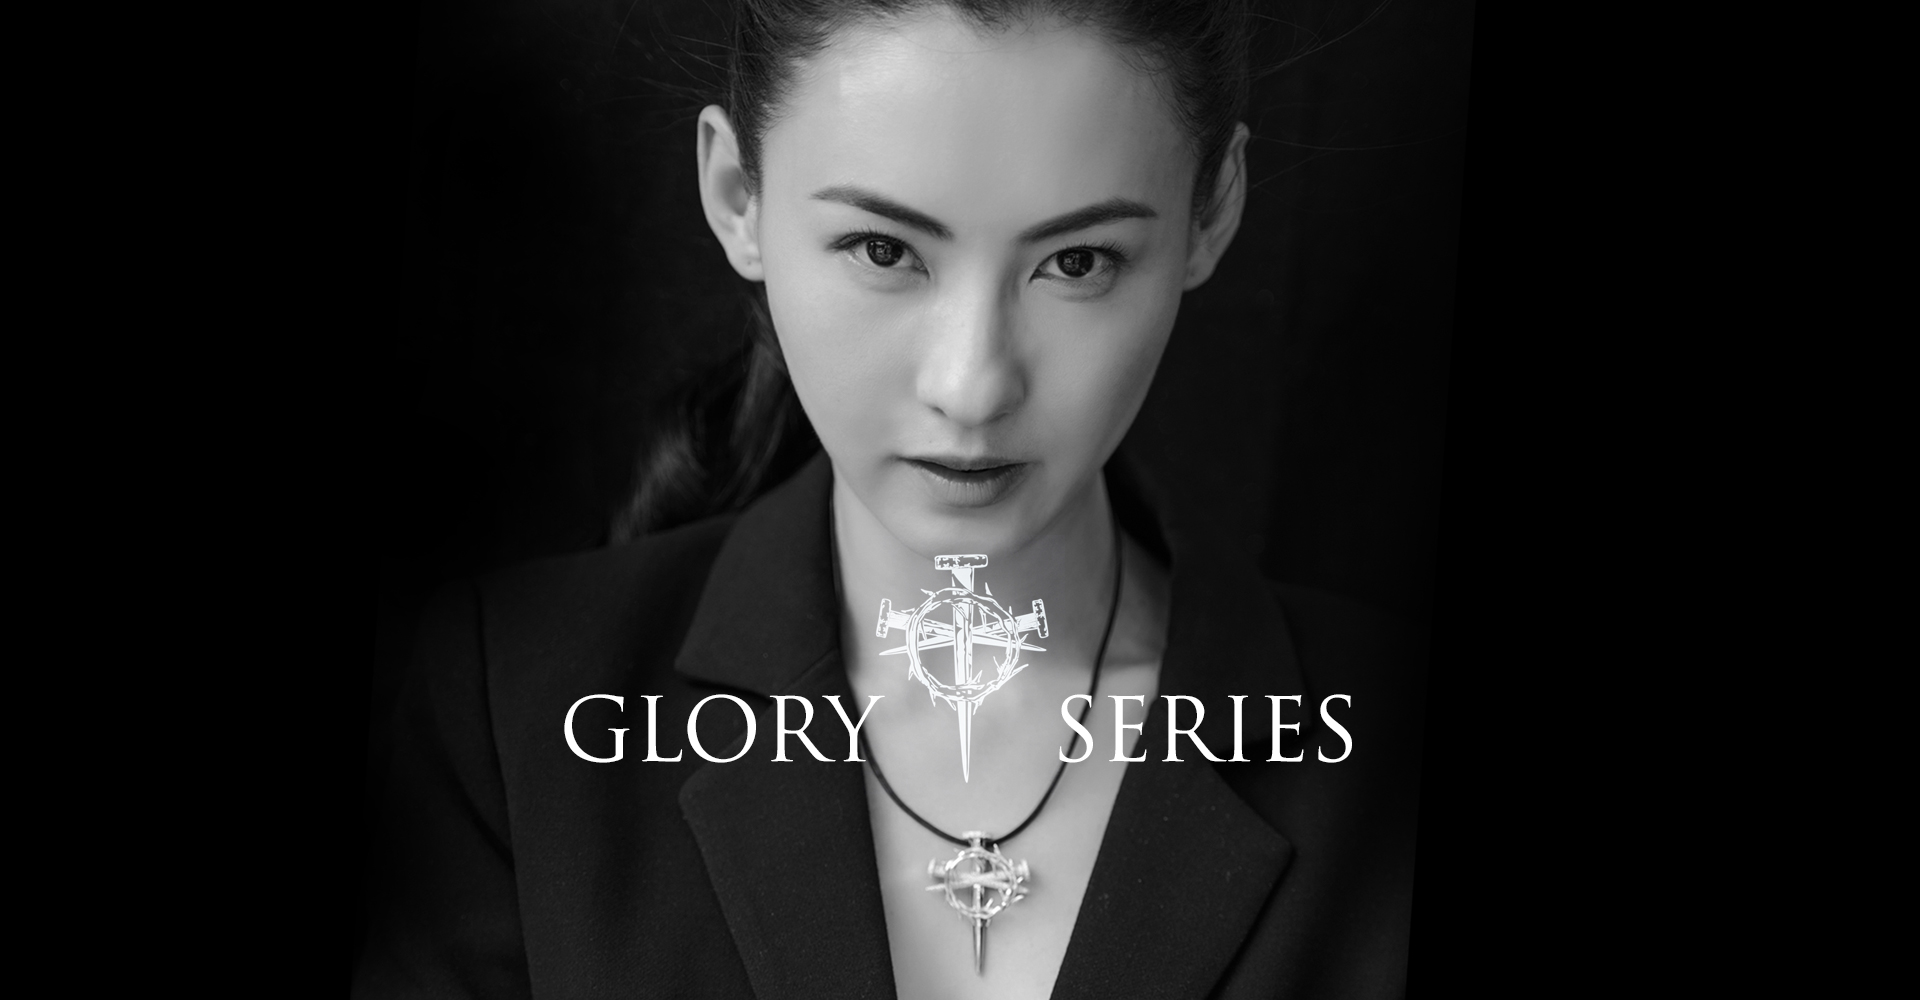 scs-main-banner-Glory-Series-1000